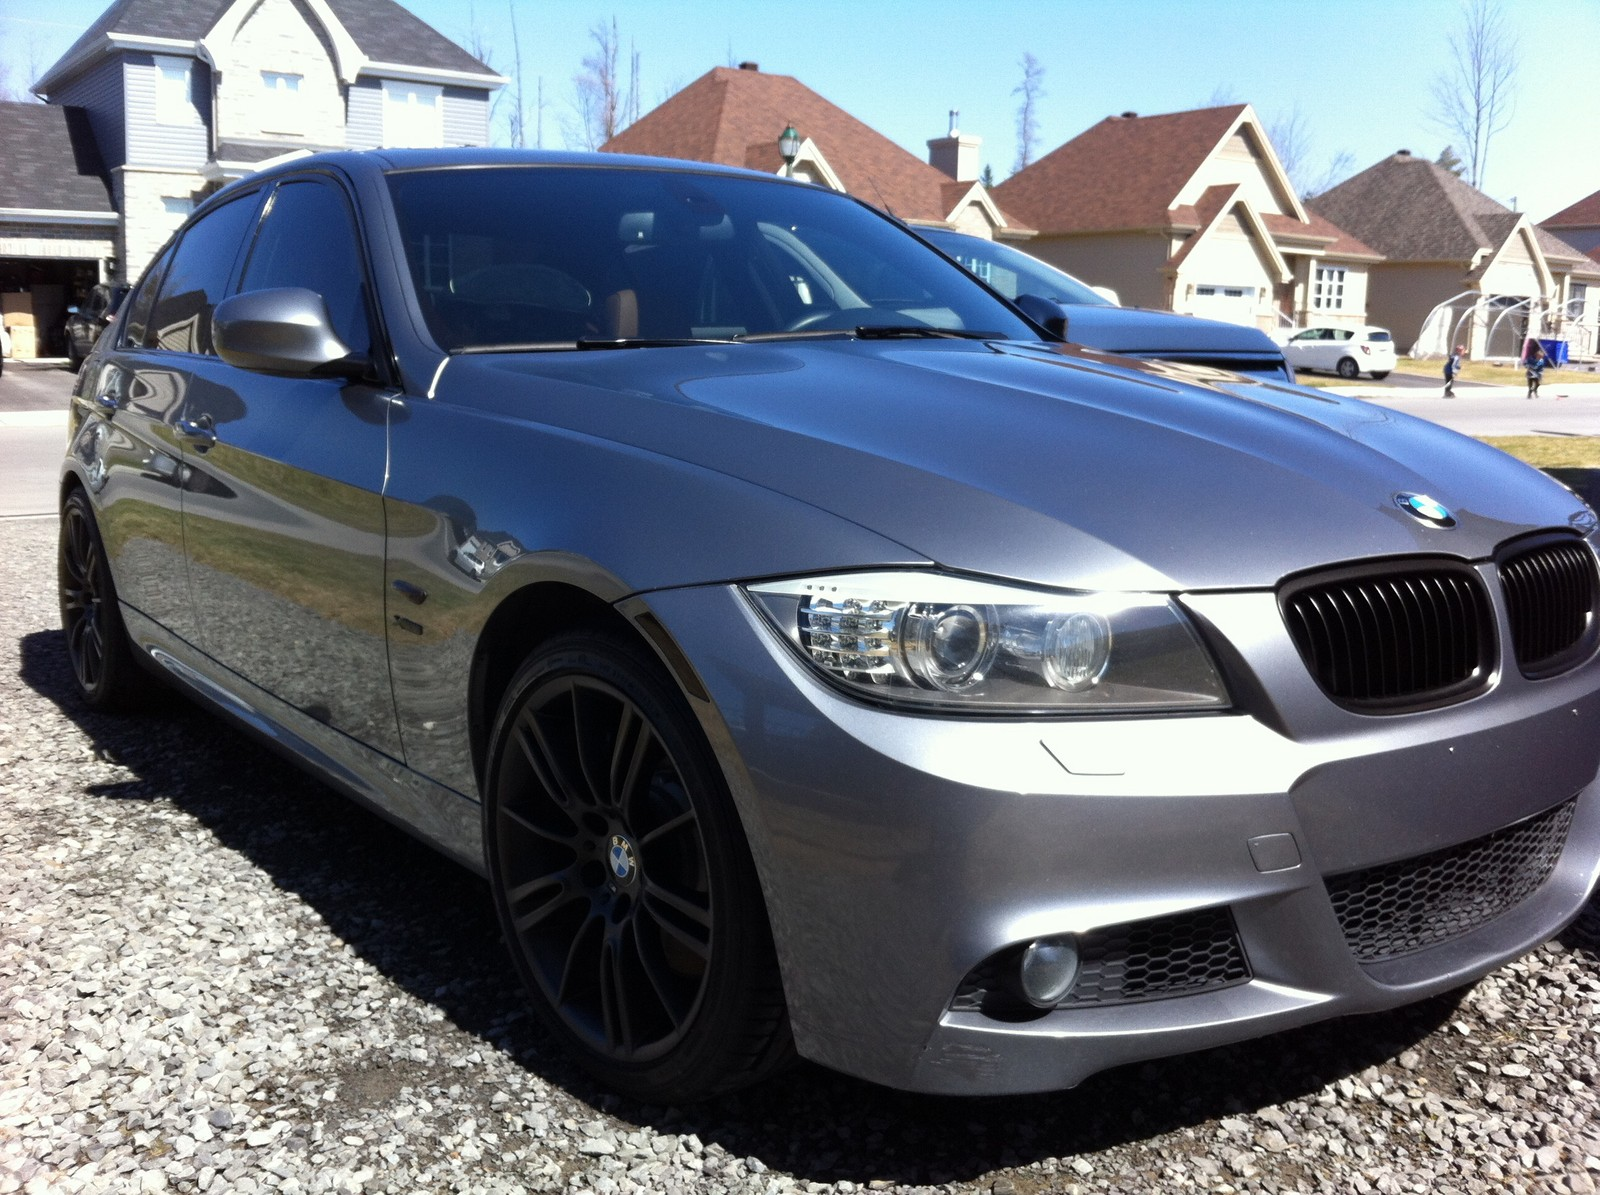 BMW Xi Mpack Mile Drag Racing Timeslip Specs - 2010 bmw 335xi